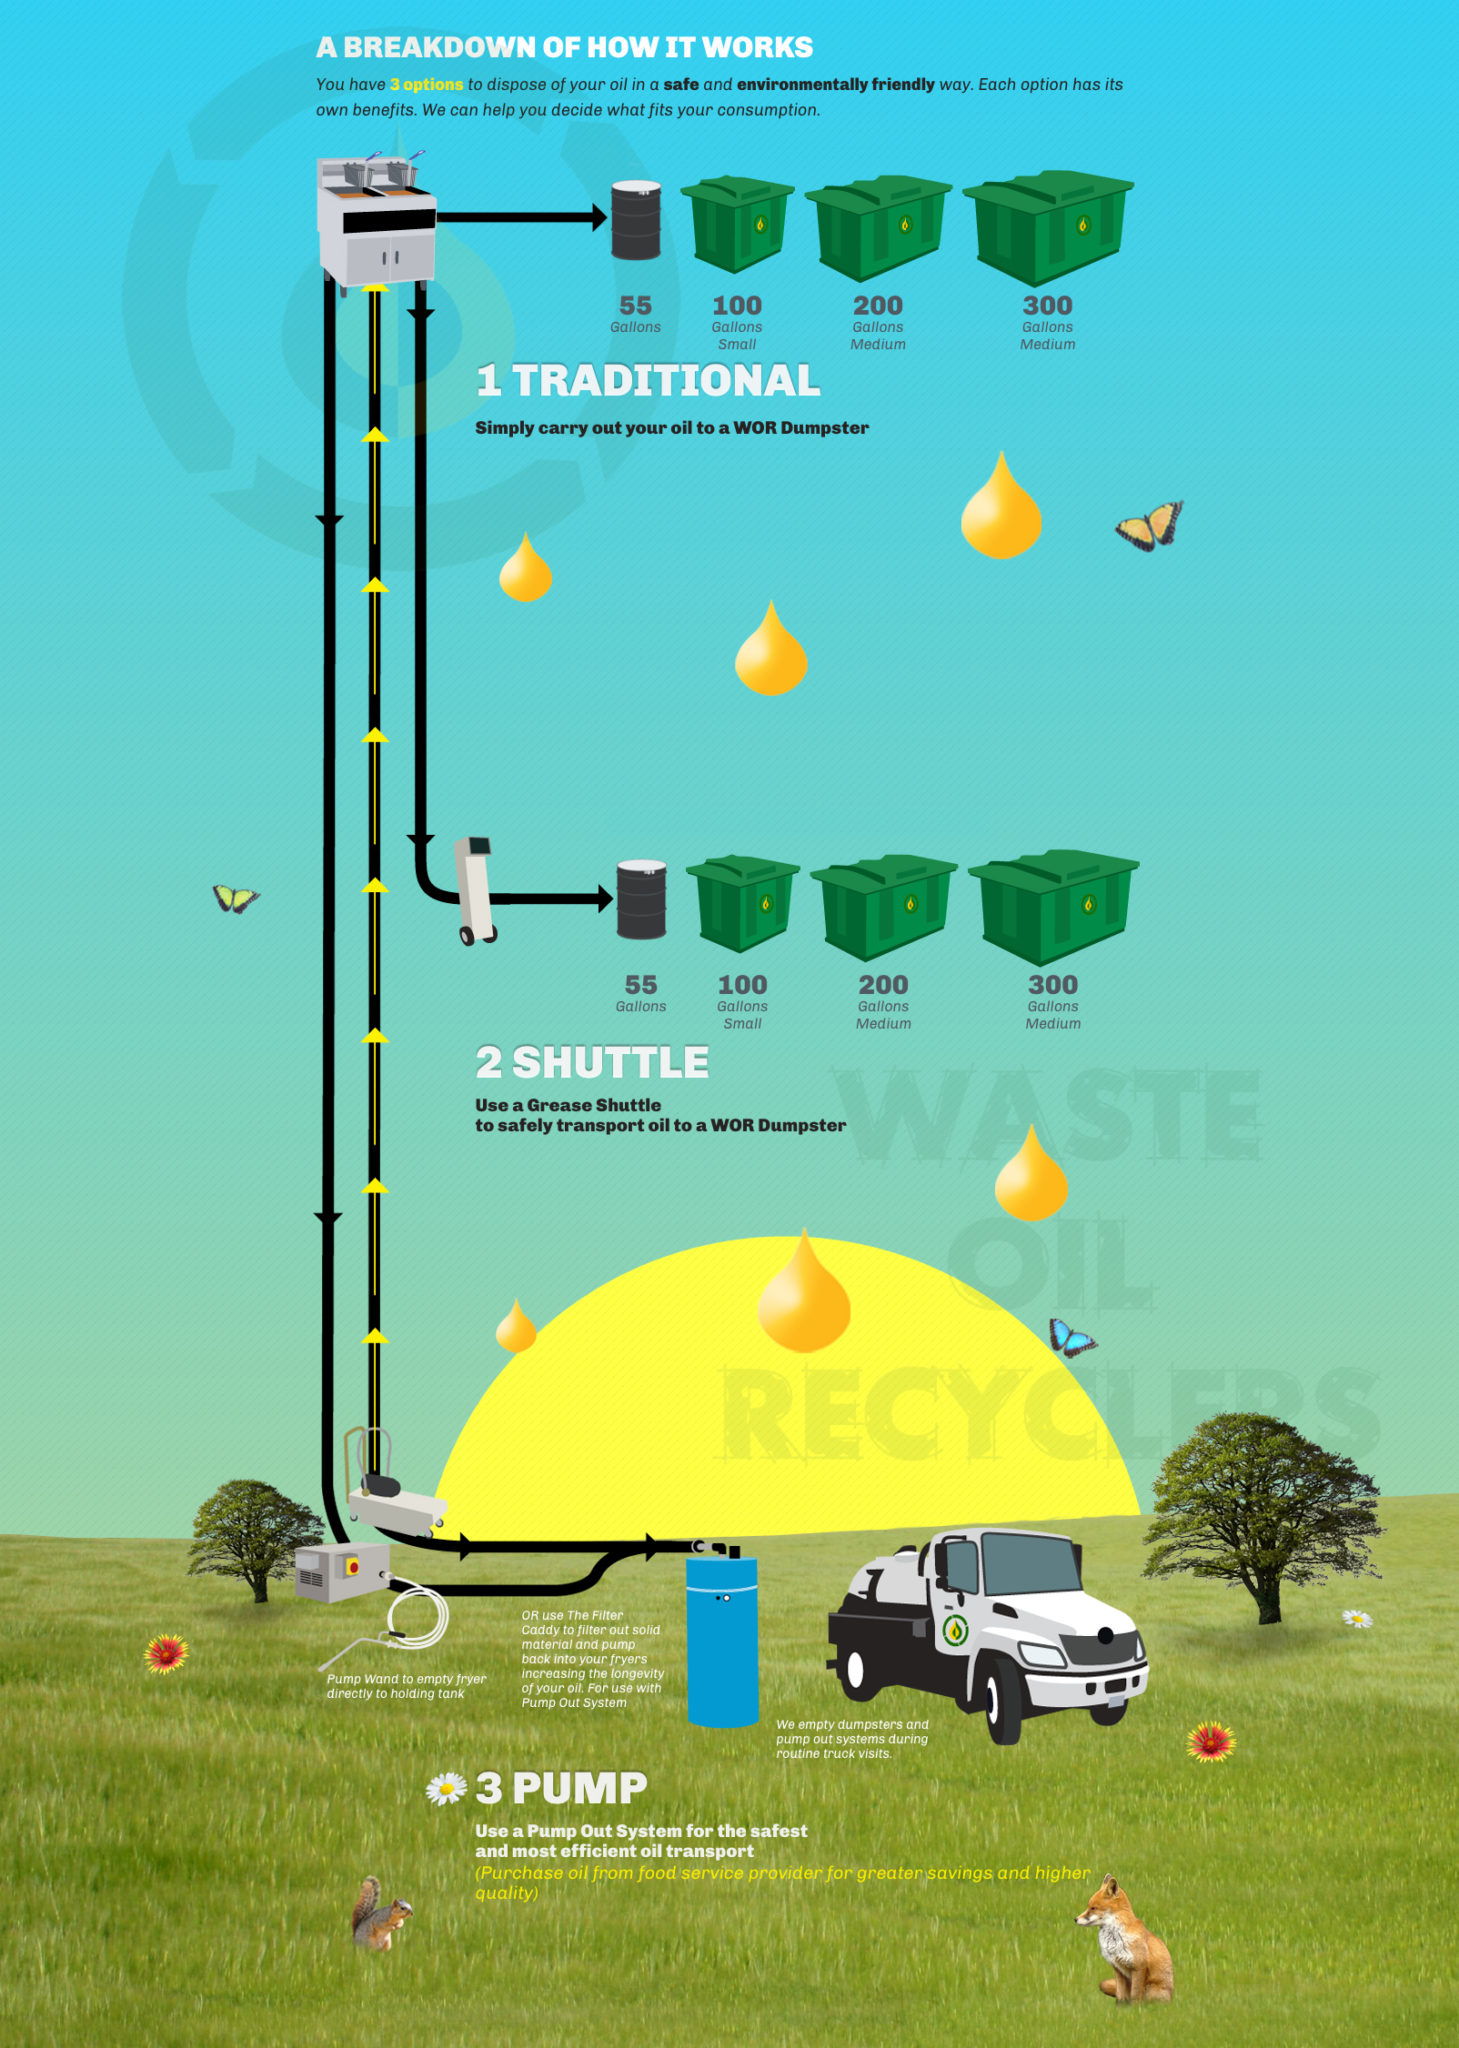 wasteoilrecyclers-waste-oil-collection-2-2.jpg